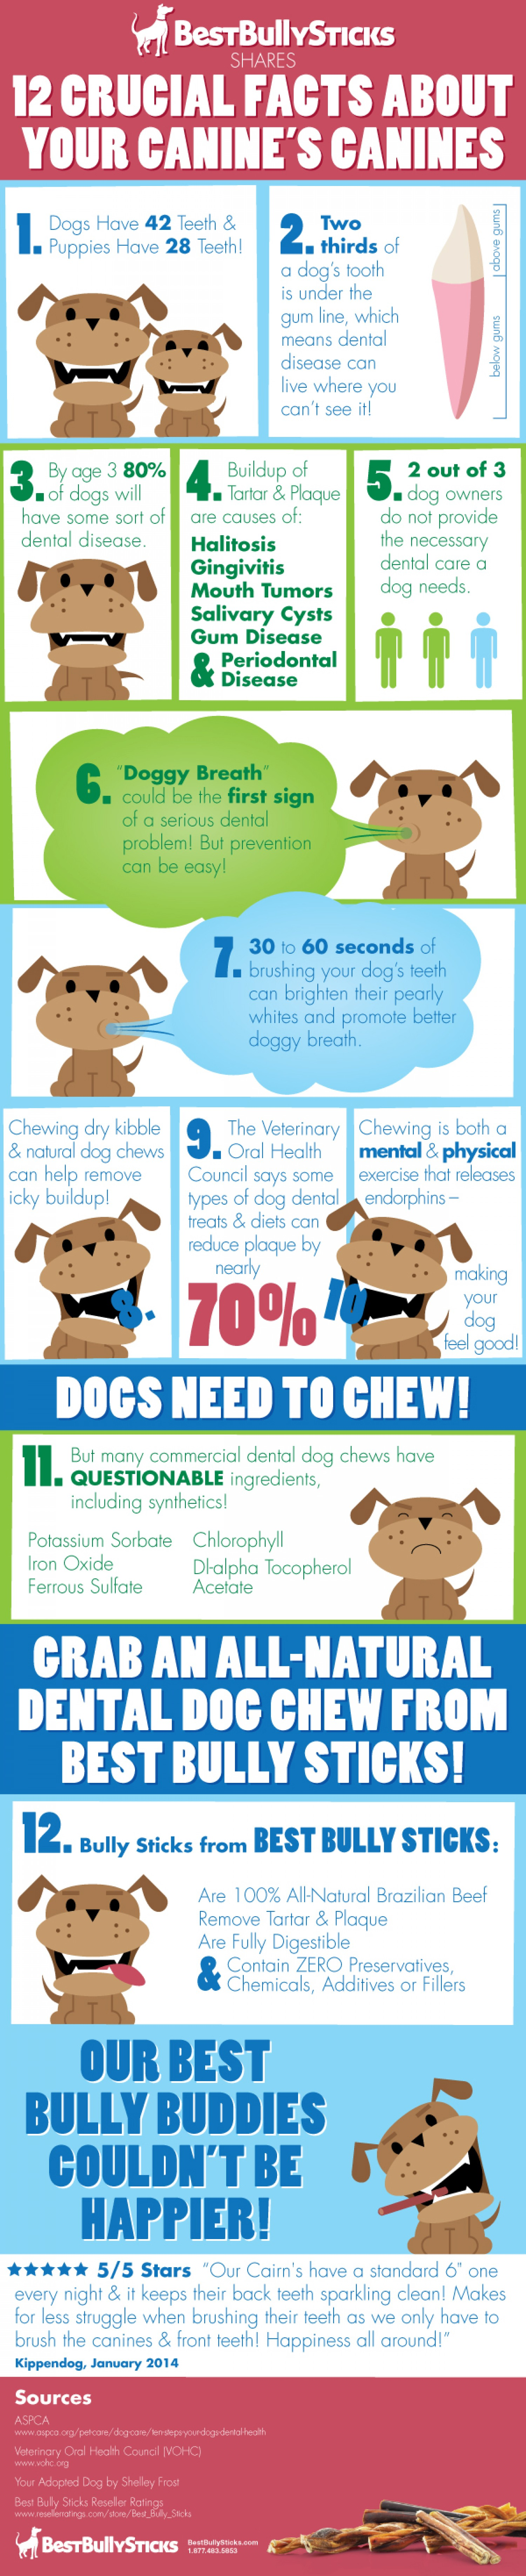 09 12-crucial-facts-about-your-canines-canines_52fa98c816418_w1500